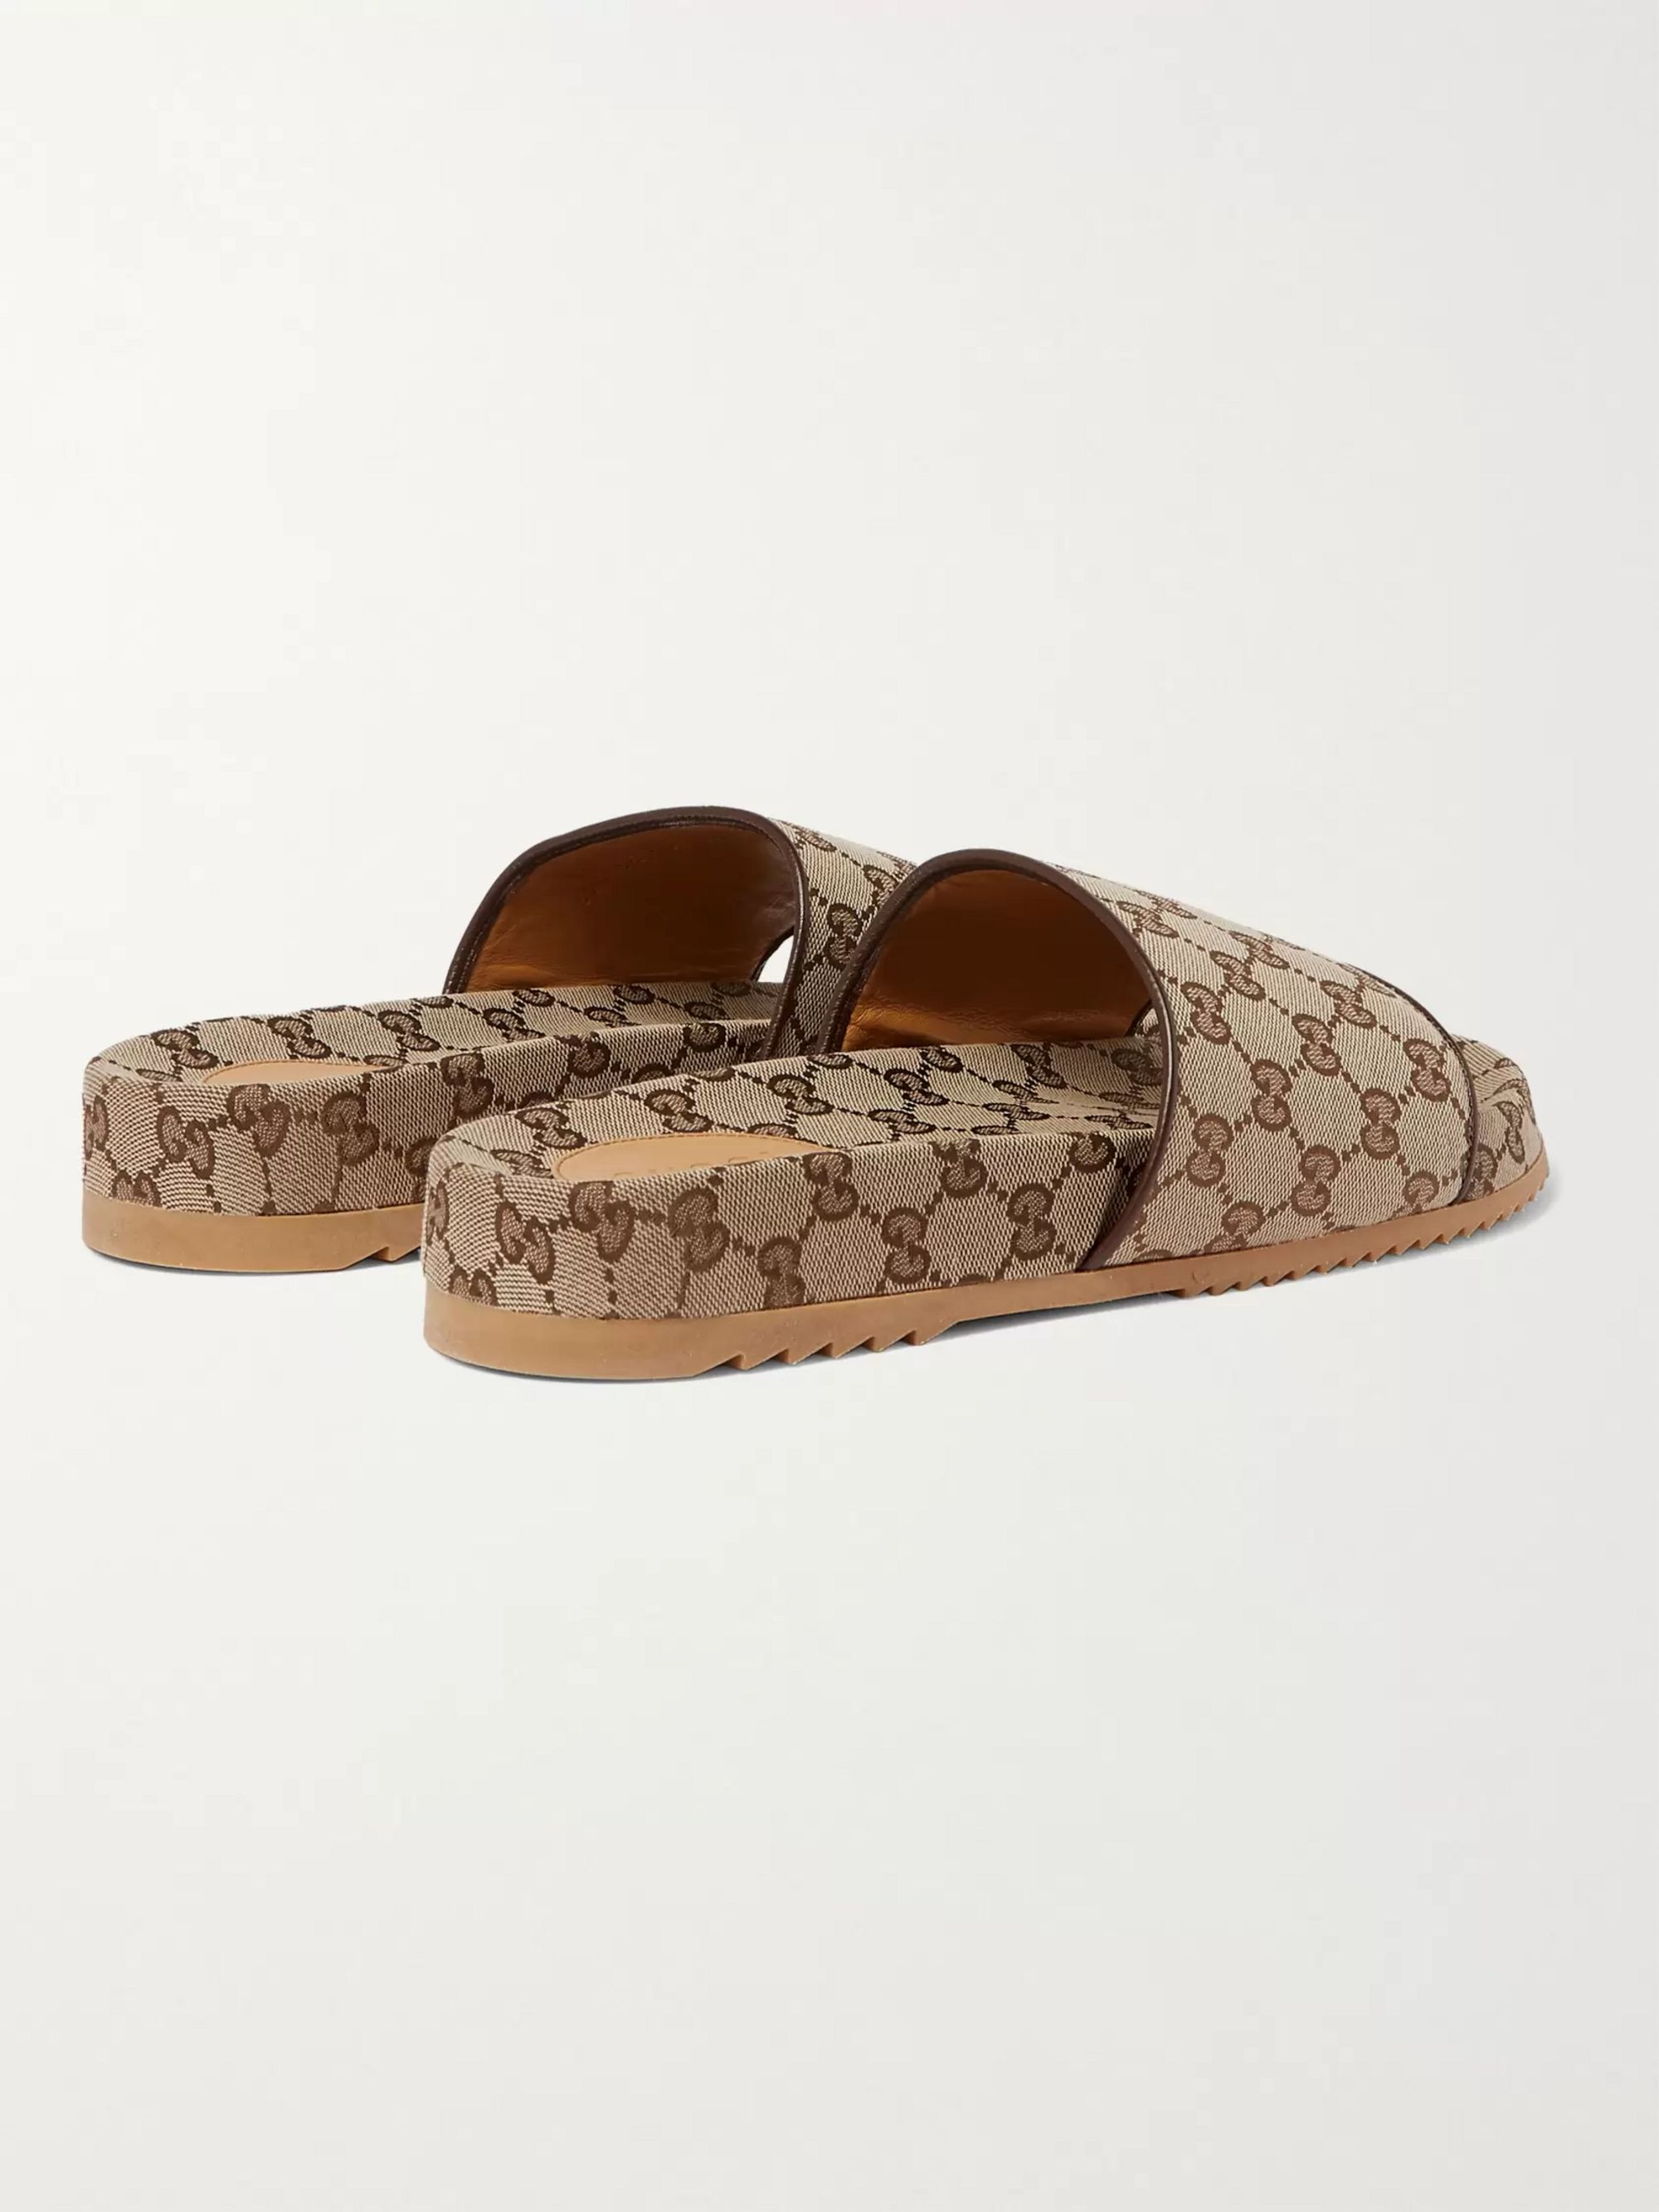 Gucci Leather-Trimmed Monogrammed Canvas Slides